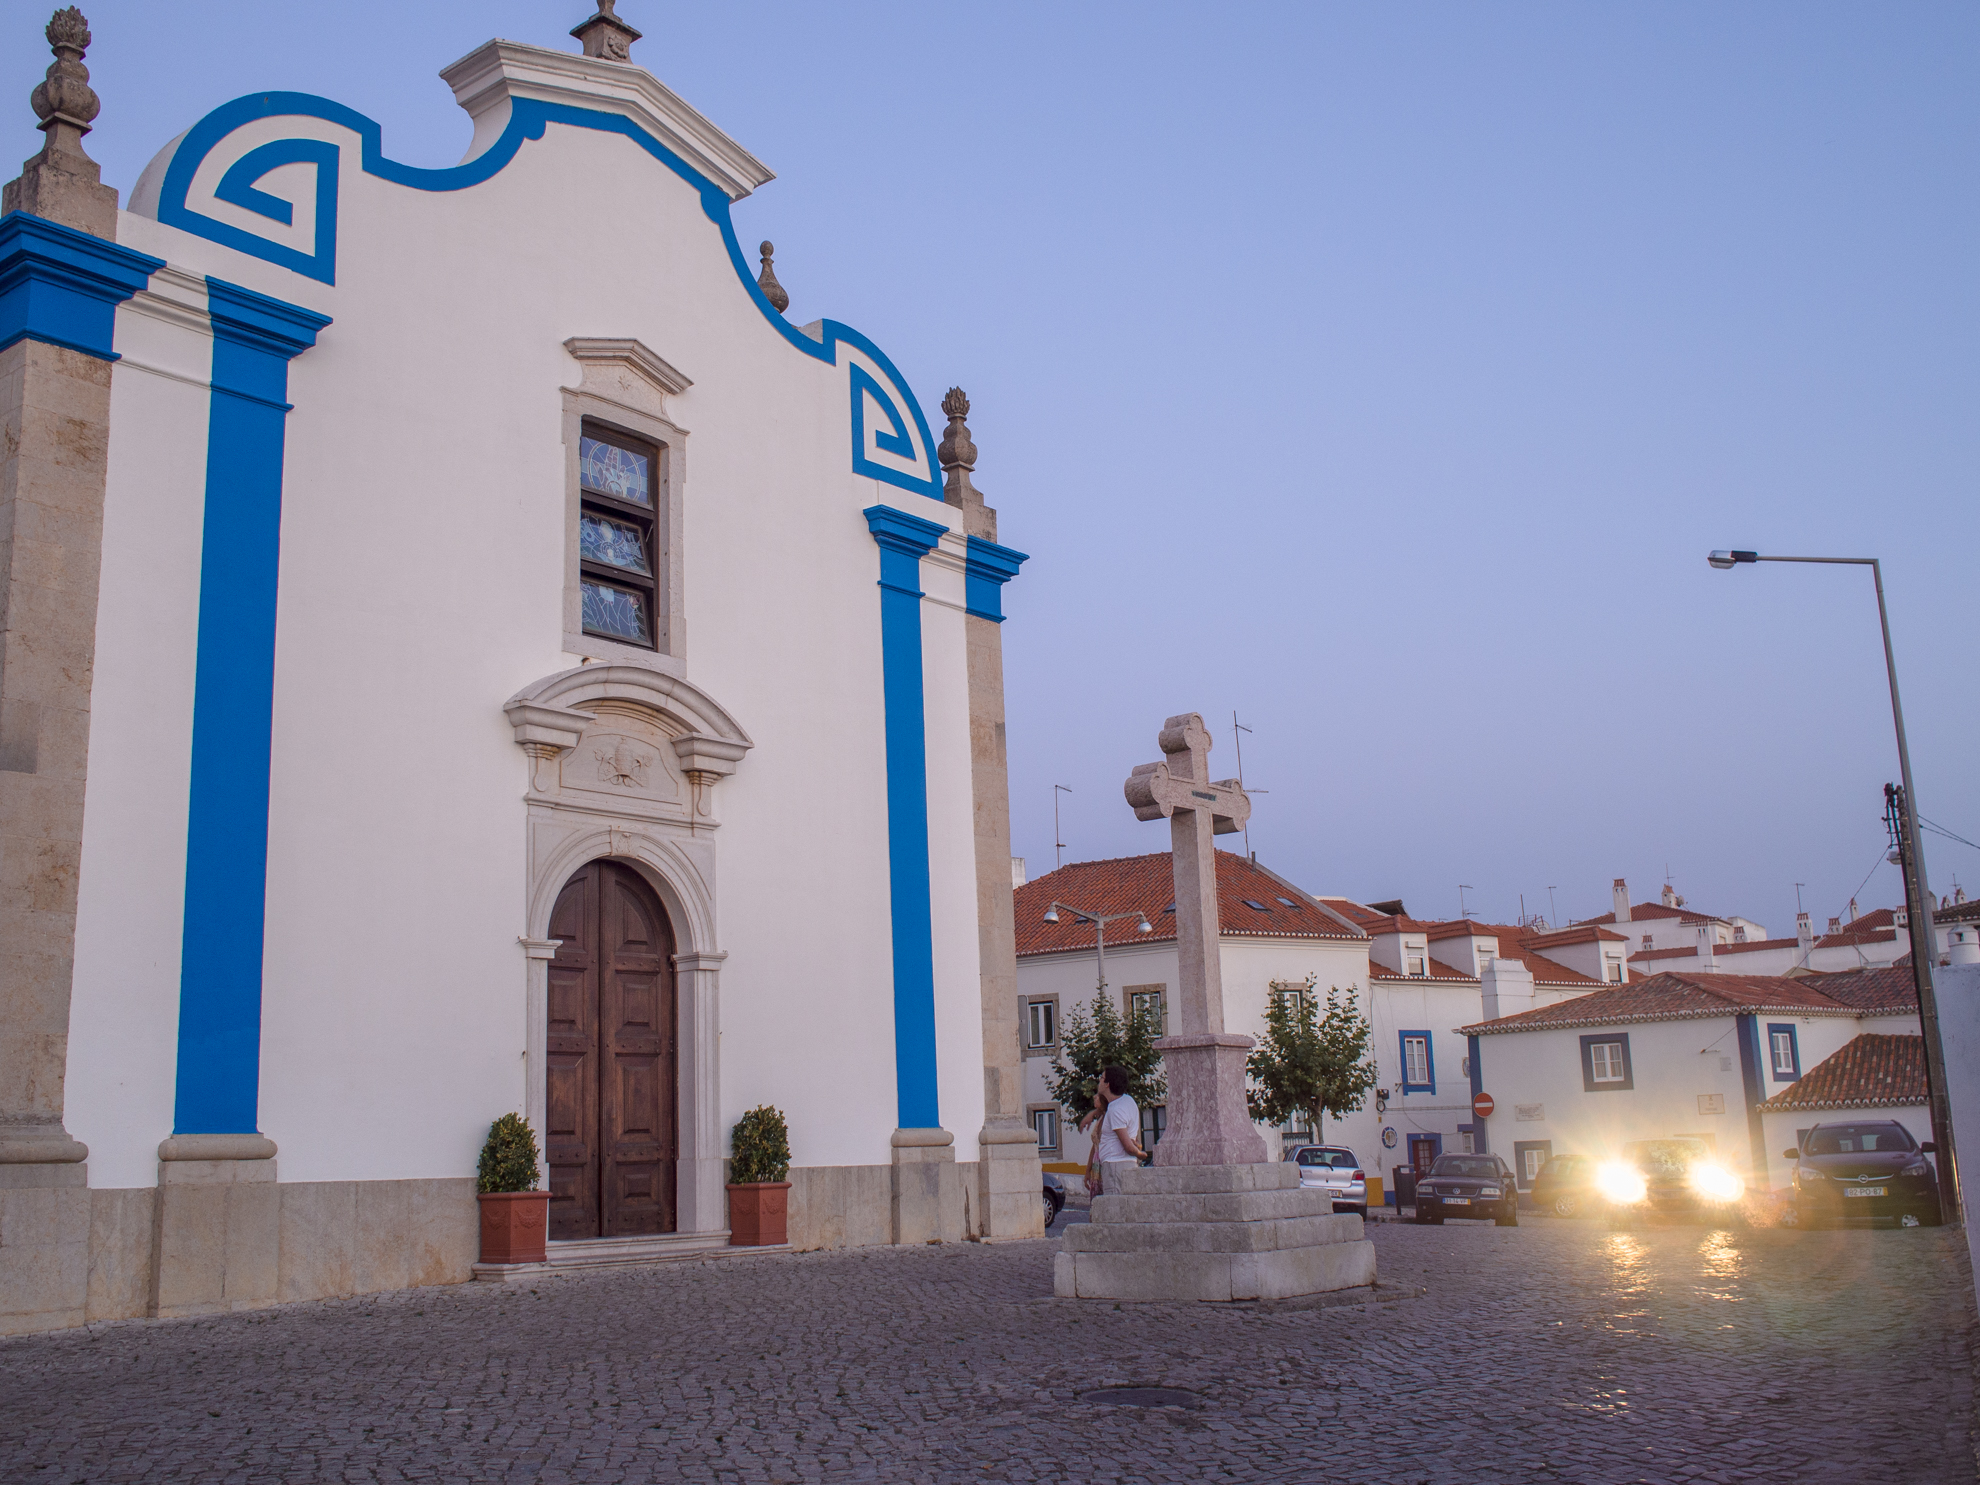 Church of Santa Marta and Nossa Senhora das Necessidades was built in 1760 in a place where there is previously an old chapel dating from 1484. The chapel of Santa Marta was the seat of the brotherhood of unmarried girls and an old place of celebrations in honor of Nossa Senhora das Necessidades